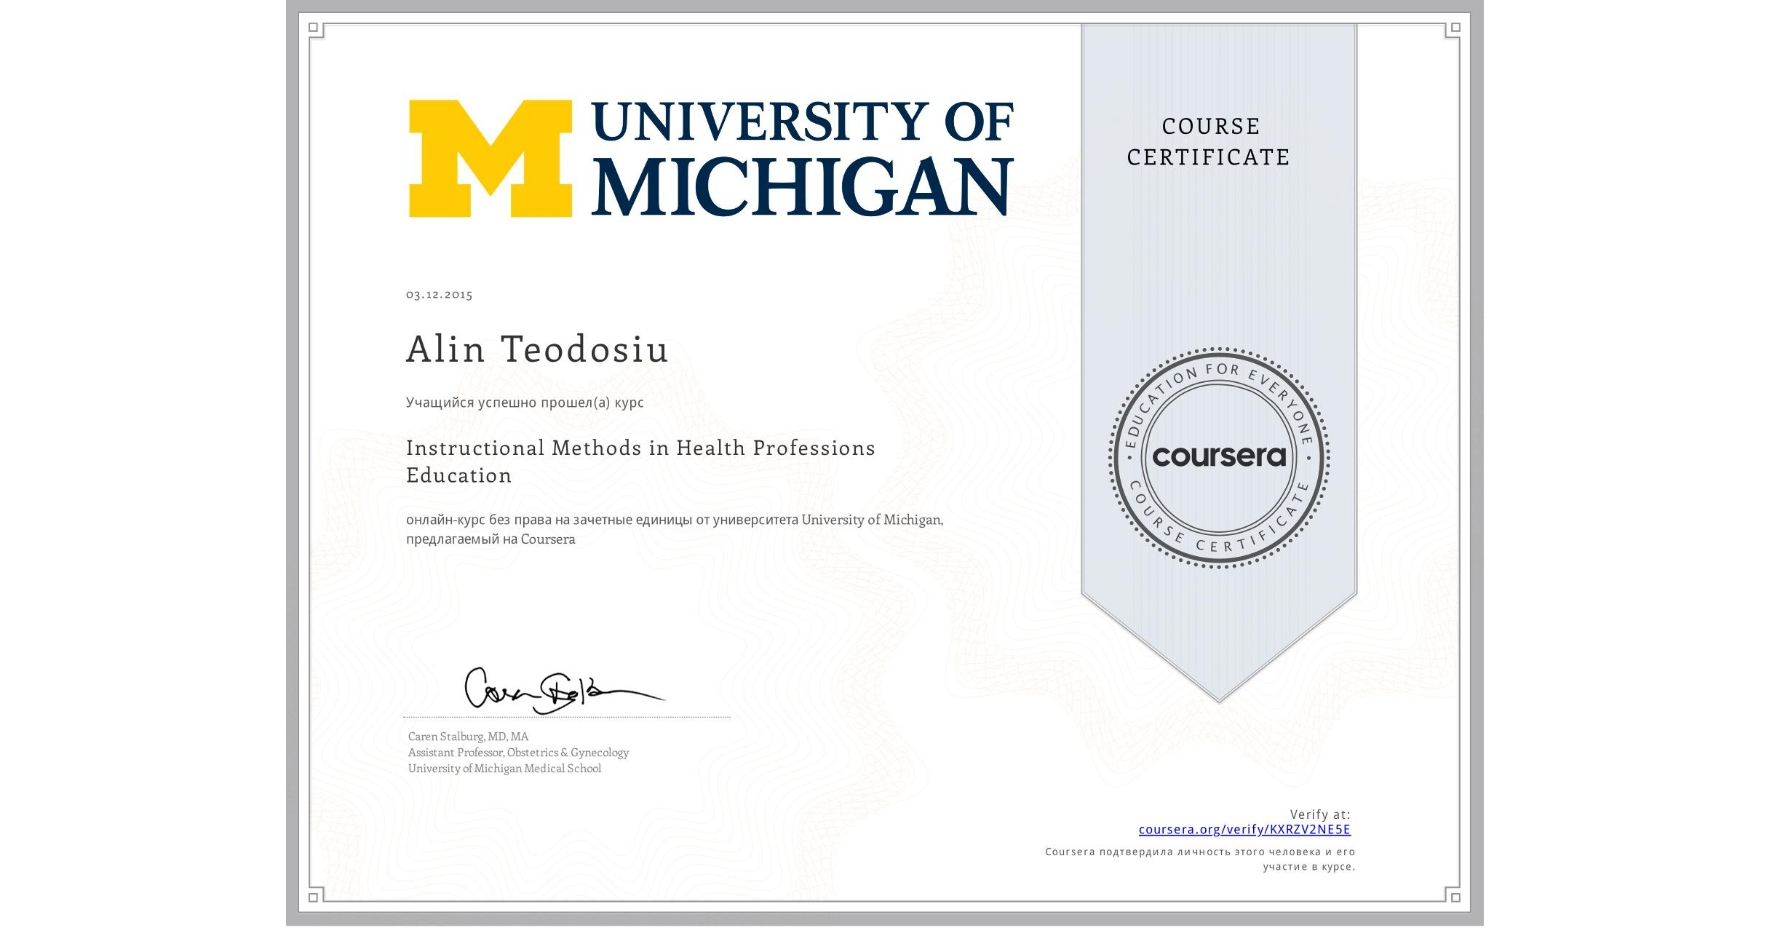 View certificate for Alin Teodosiu, Instructional Methods in Health Professions Education, an online non-credit course authorized by University of Michigan and offered through Coursera